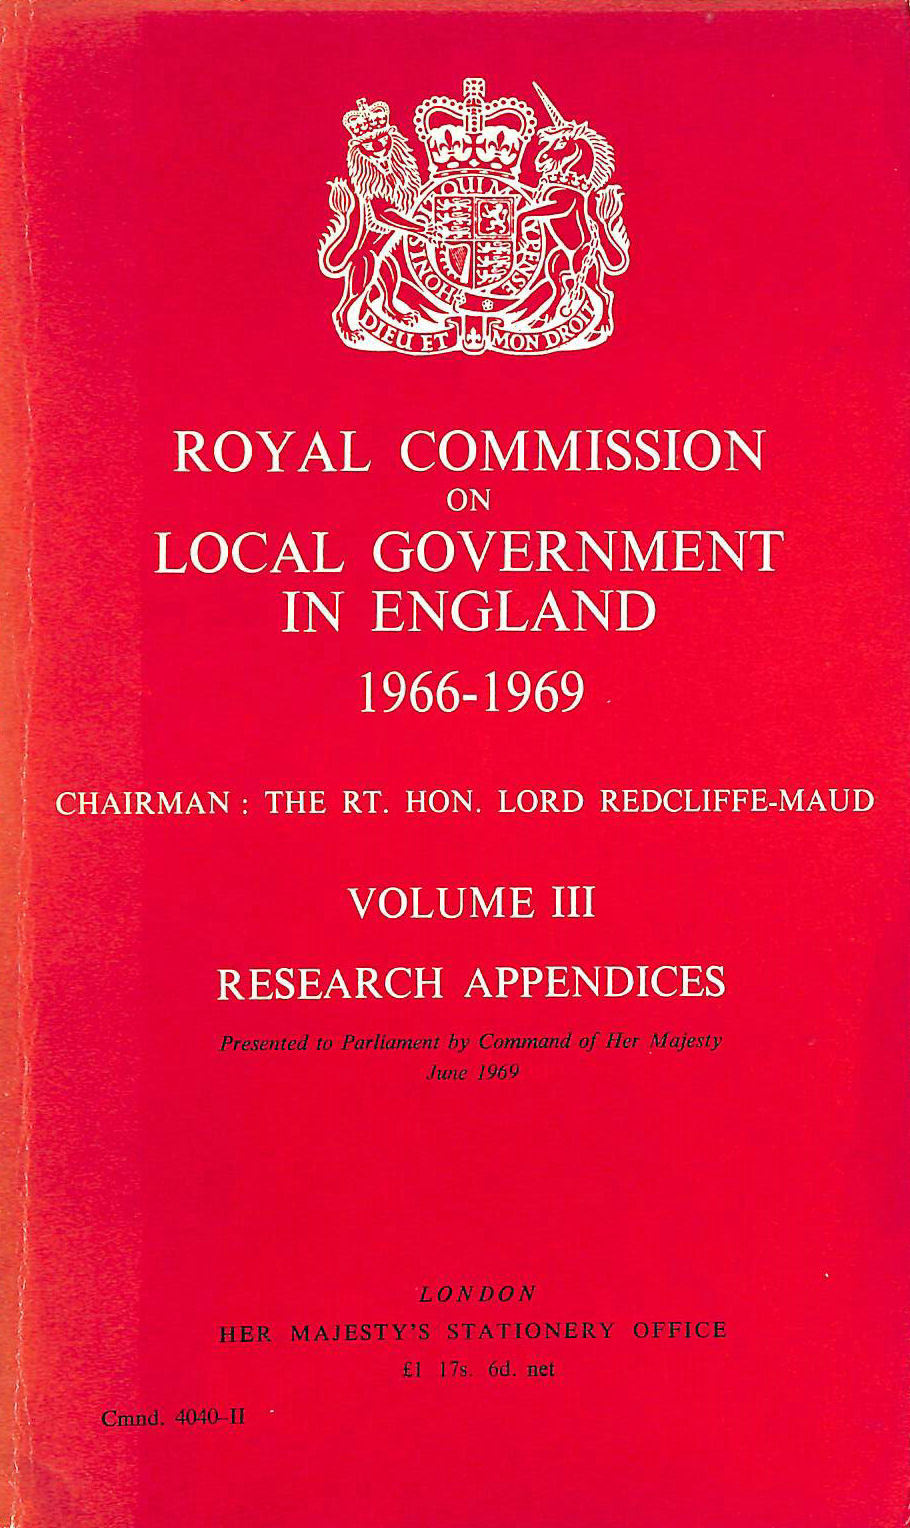 Image for Royal Commission on Local Government in England 1966-69: Volume III Research Appendices